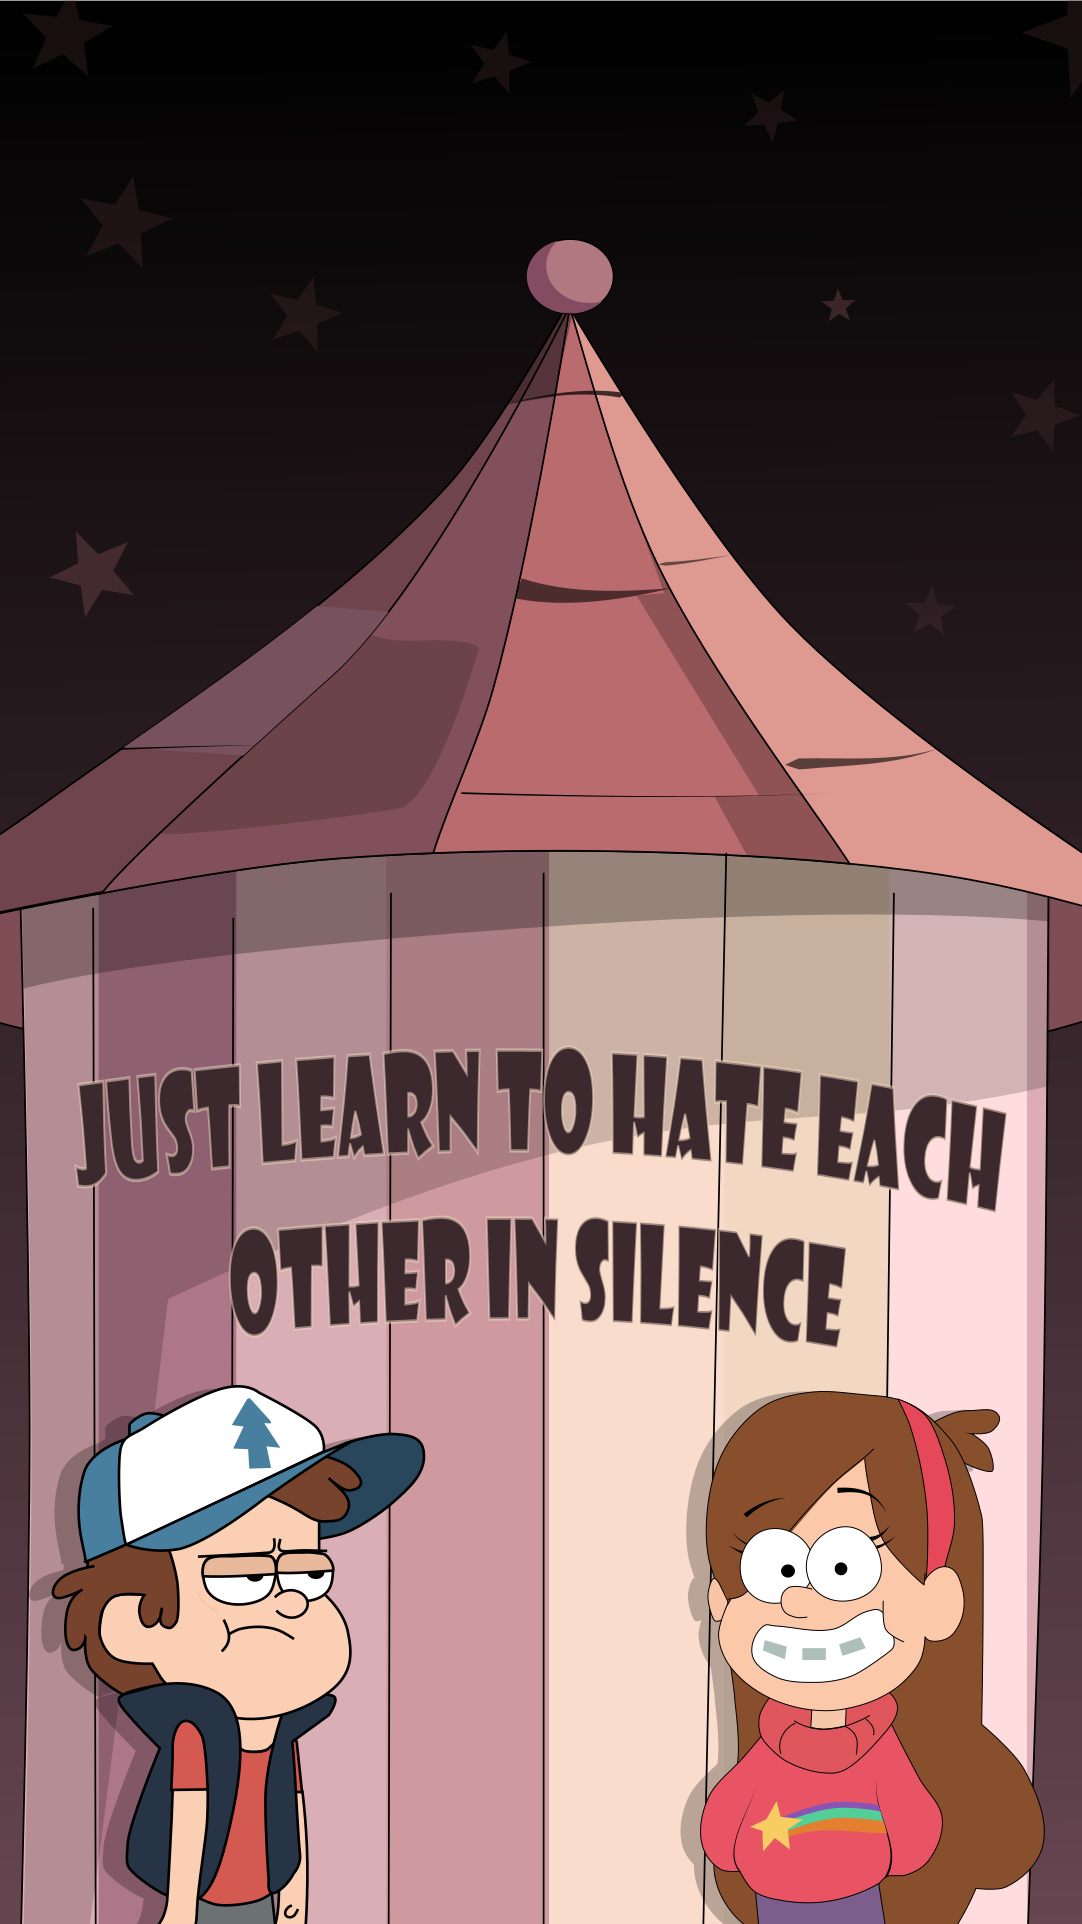 OCMO-Gravity-Falls-Mobile-Learn-to-hate-each-other-in-silence-1080x1920-Need-iPhone-S-wallpaper-wp3401686